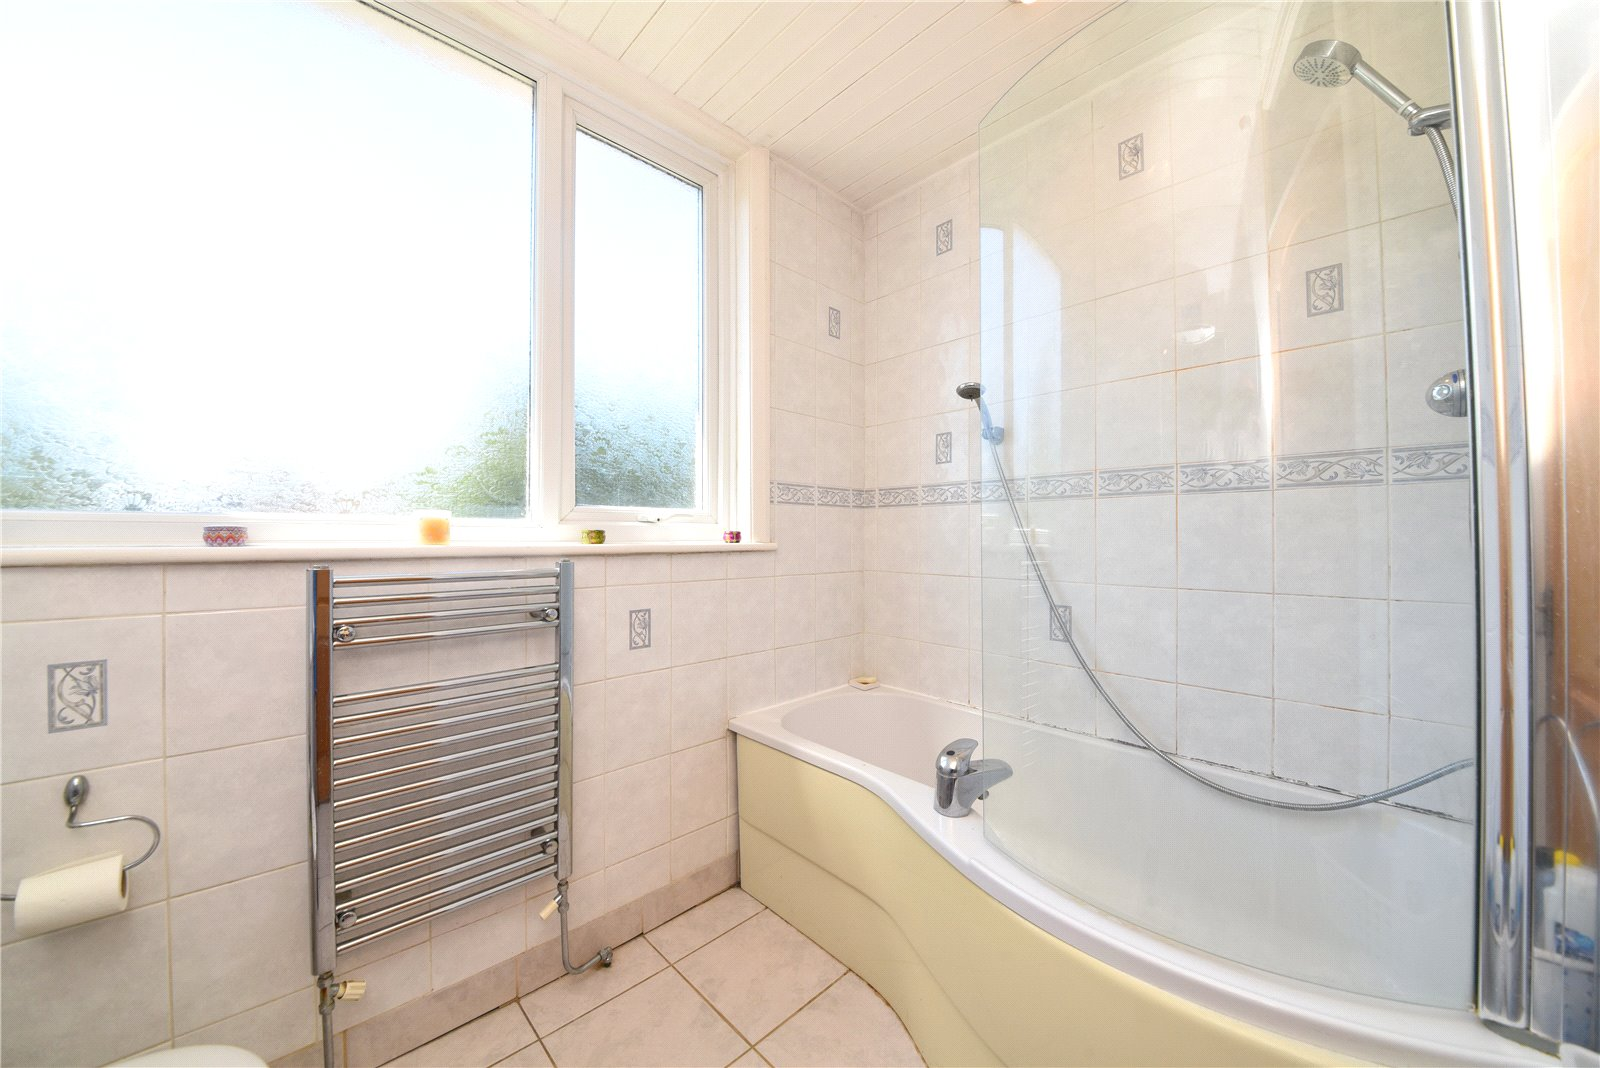 3 bed house for sale in Southgate, N14 4NY 4